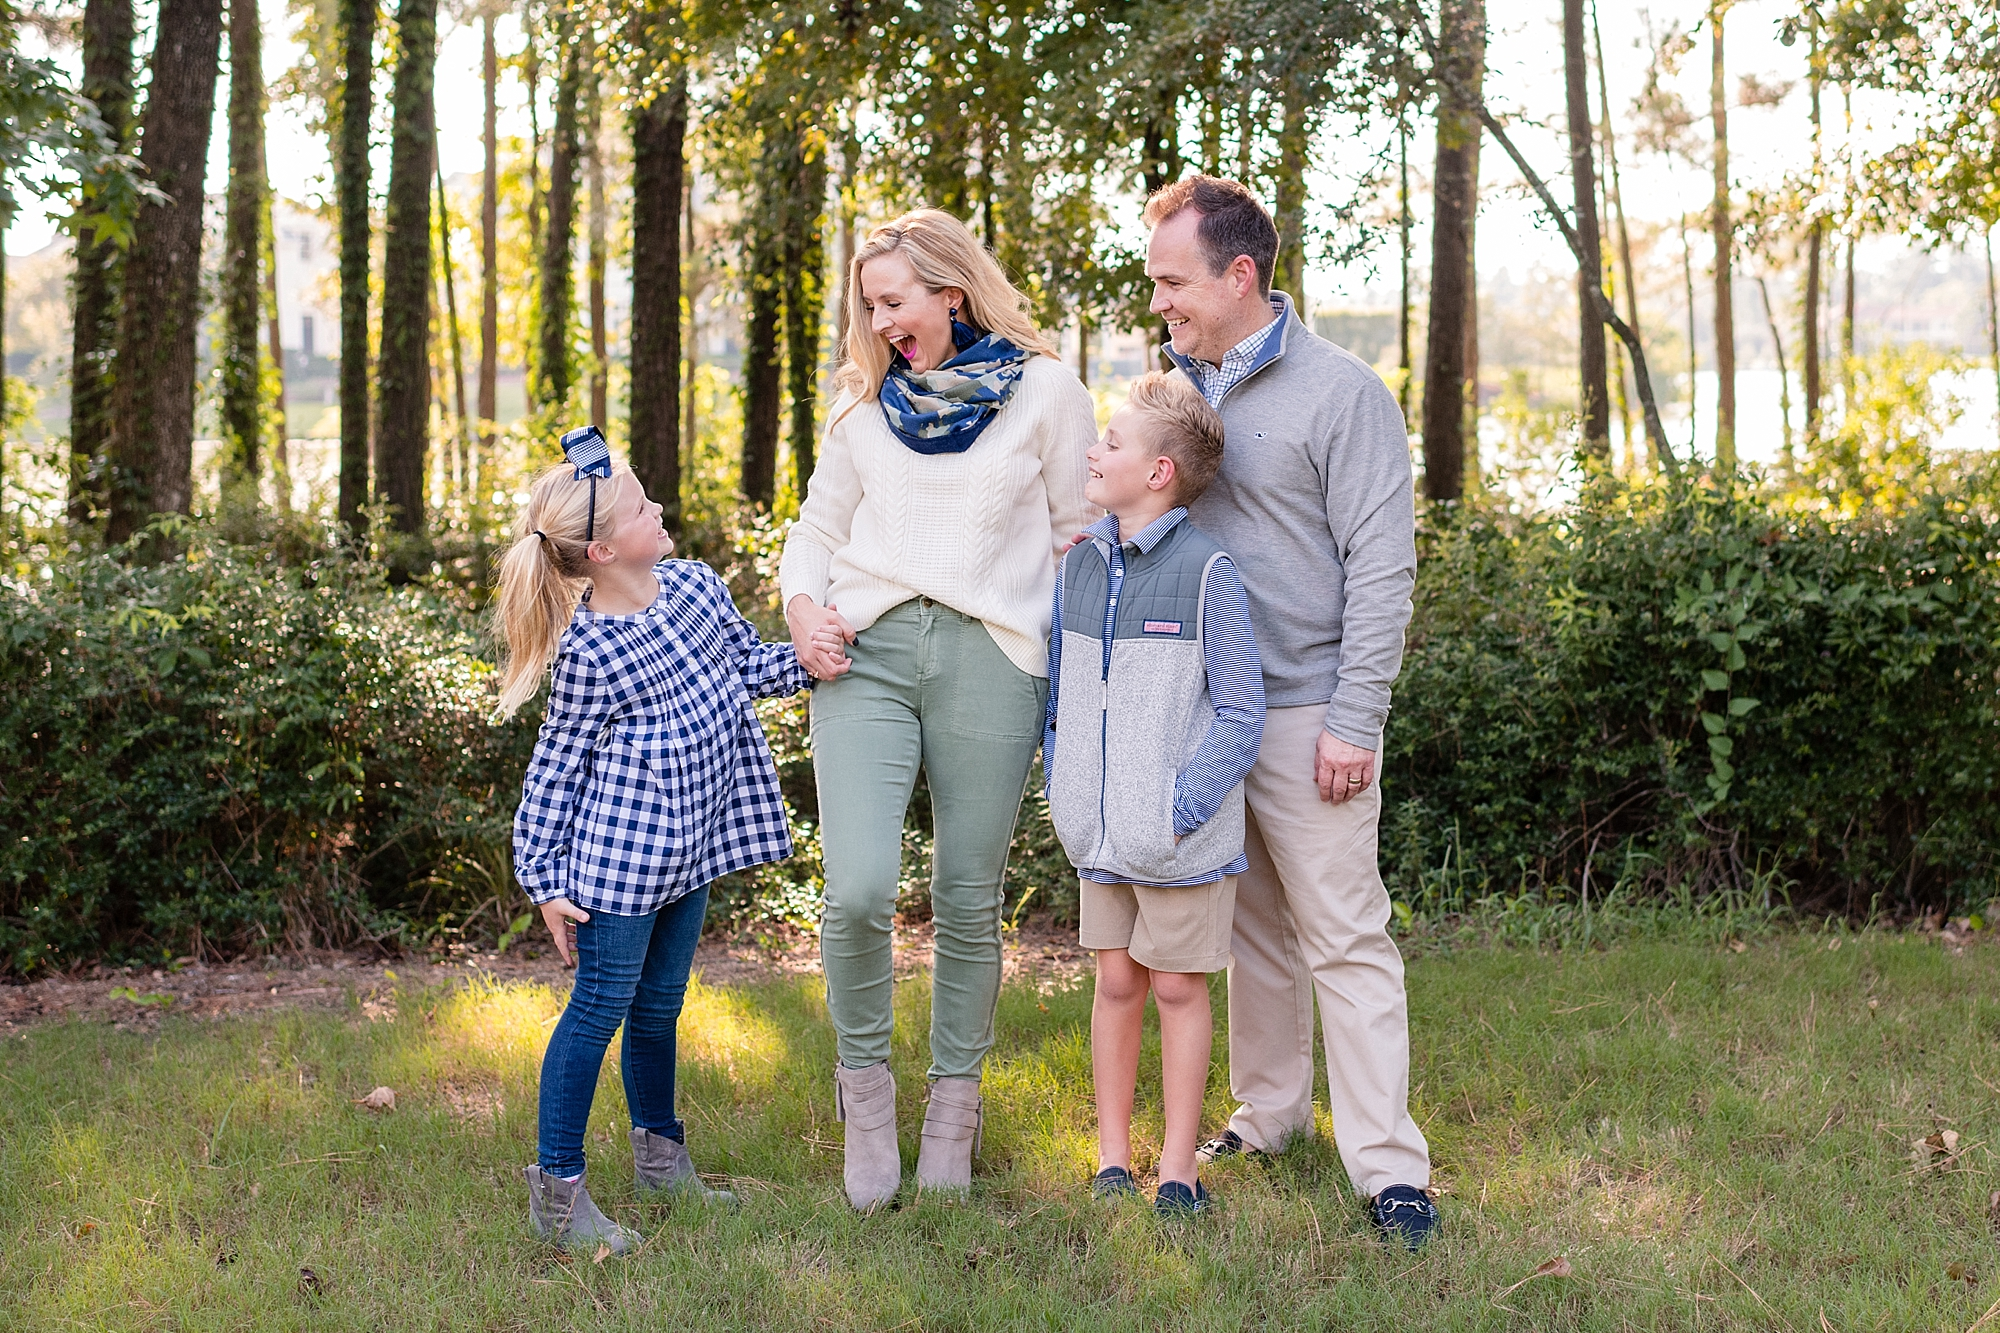 Cute Fall Family Photo Outfit Ideas featured by popular Houston life and style blogger, Fancy Ashley